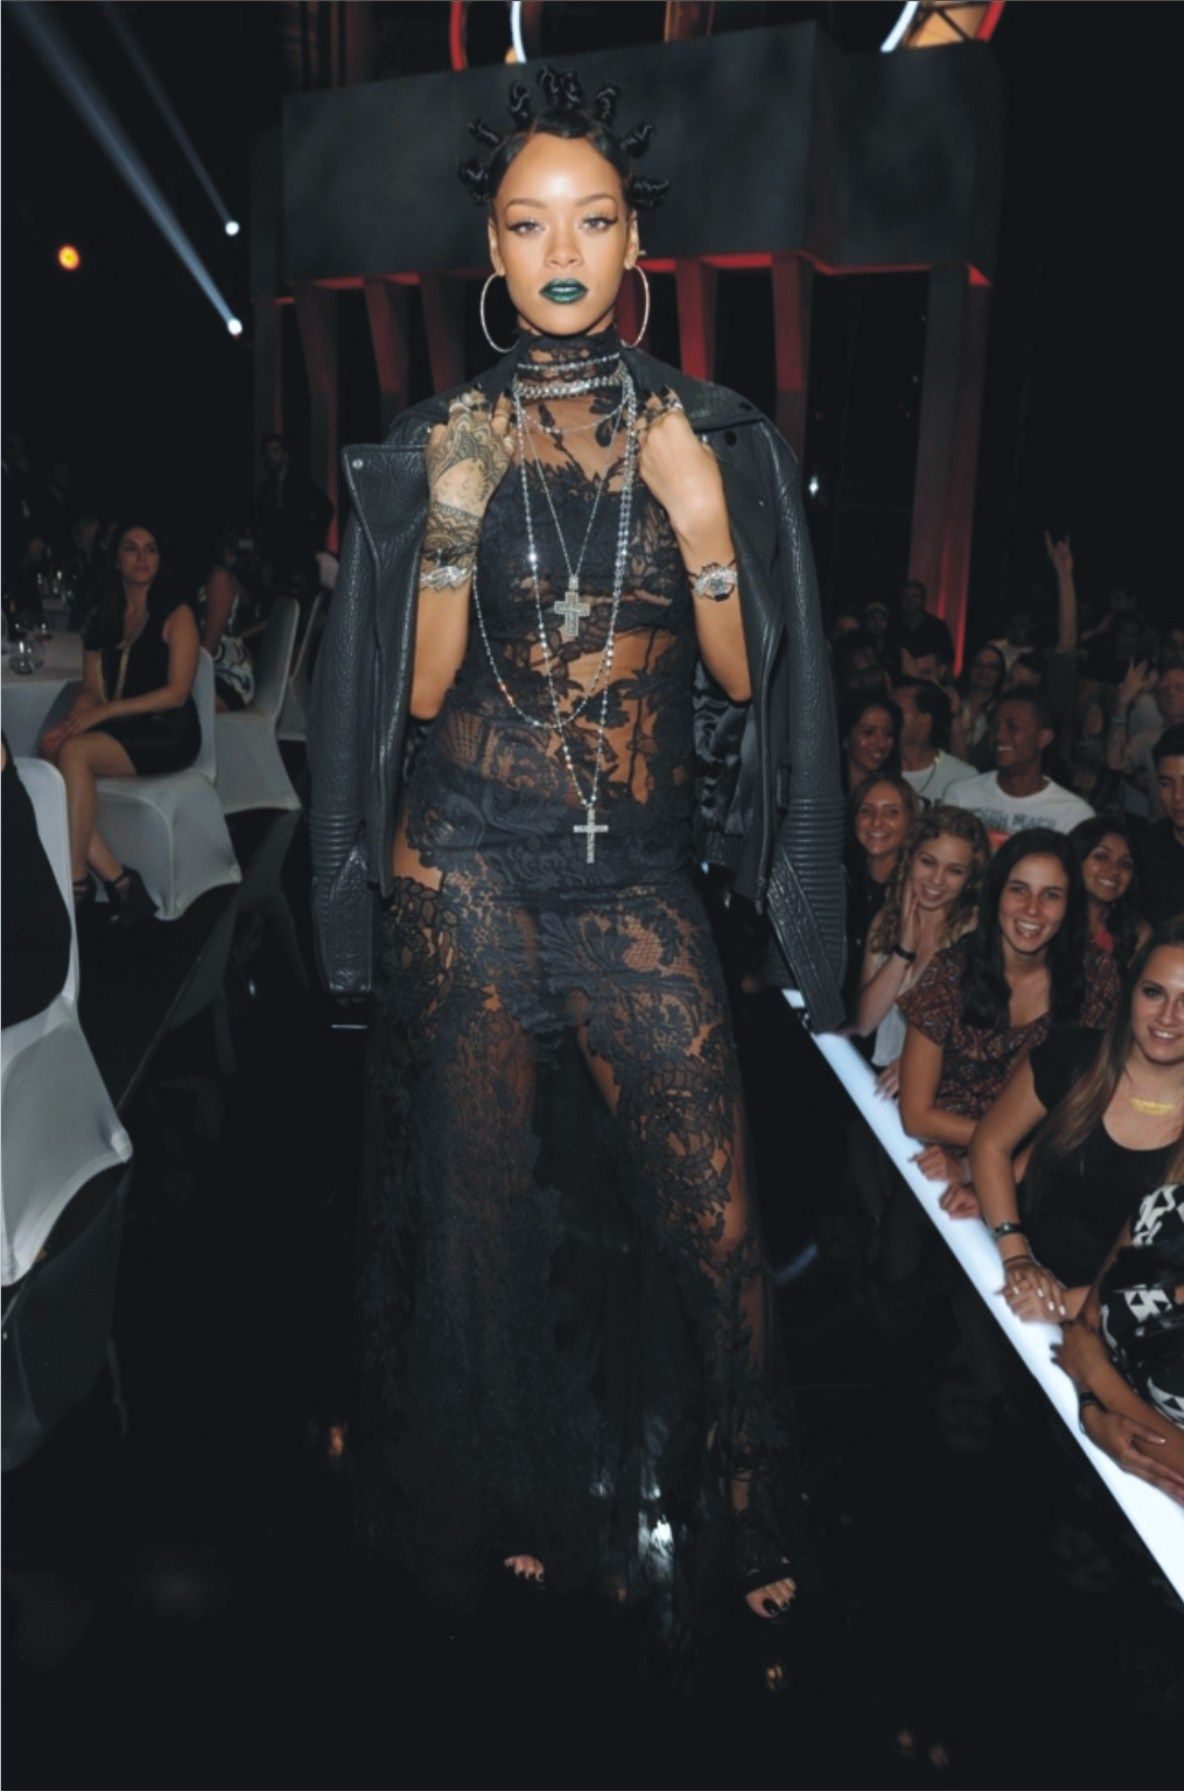 In case you were wondering how long before celebs started to show up here. And in case you want to try green lipstick, feel free. It was #brutallychic on #Rihanna and so was her gown from #Givenchy. www.givenchy.com #womensfashion #womenswear